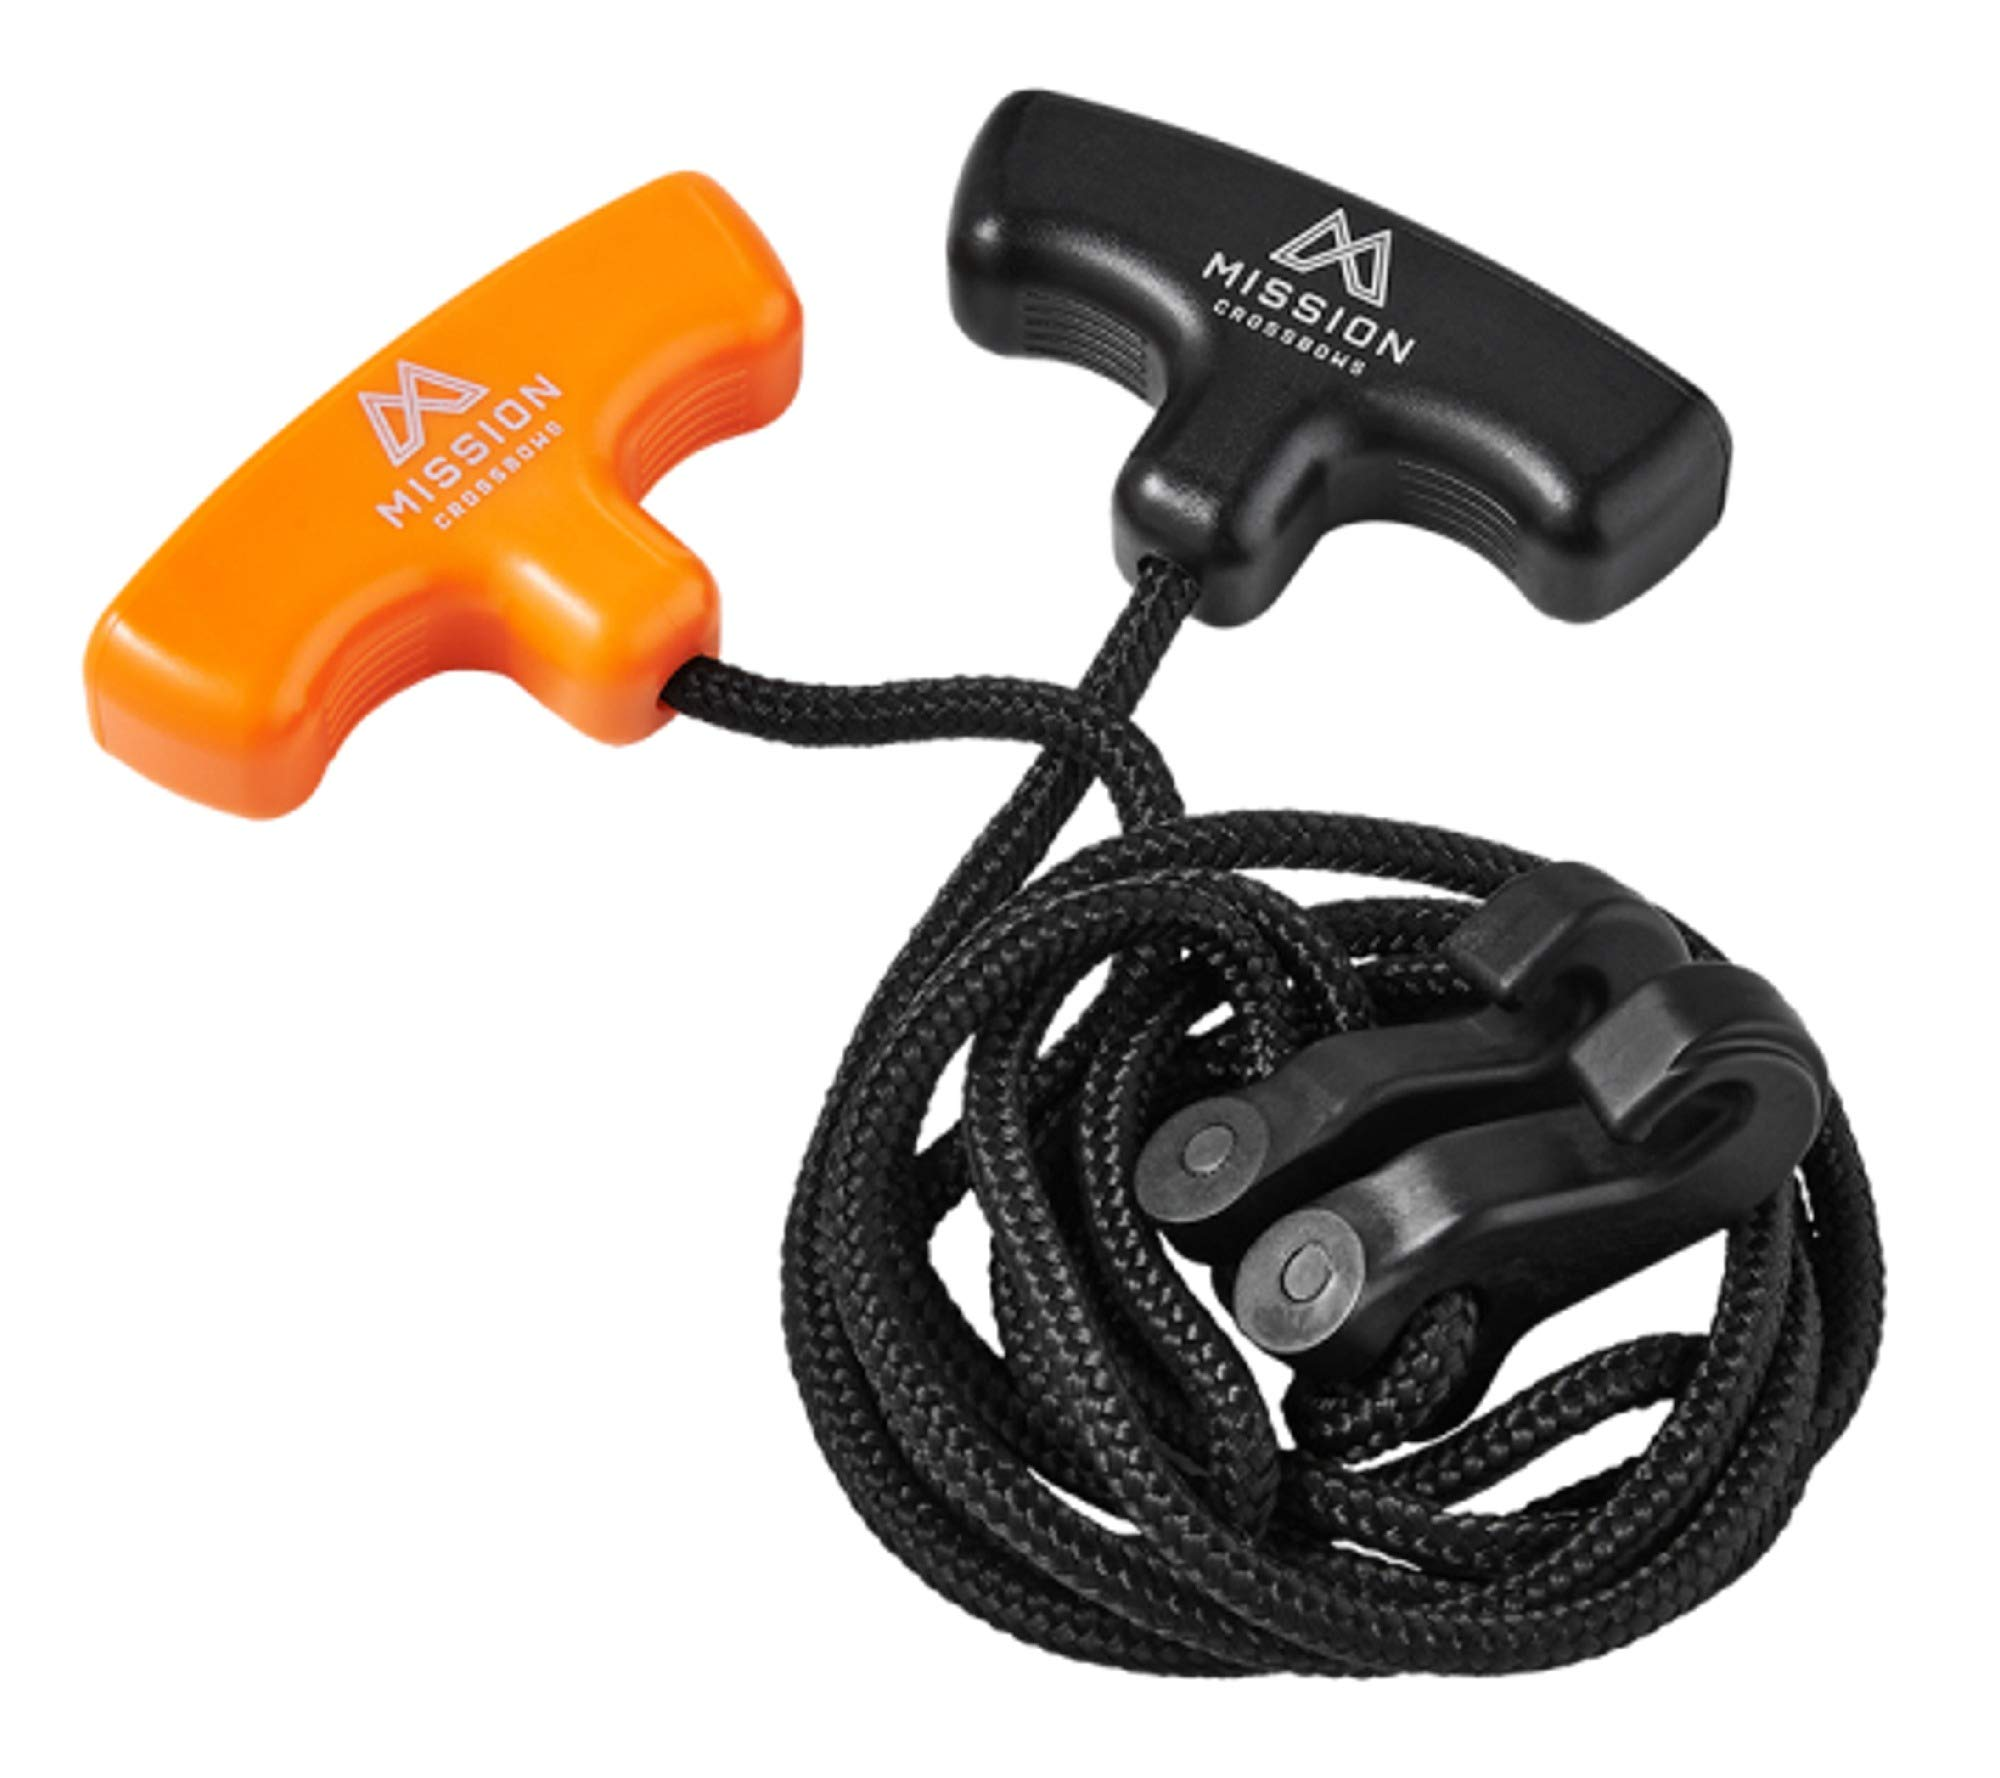 Mission Crossbows Cocking Aid Crossbow Cocking Rope #80676